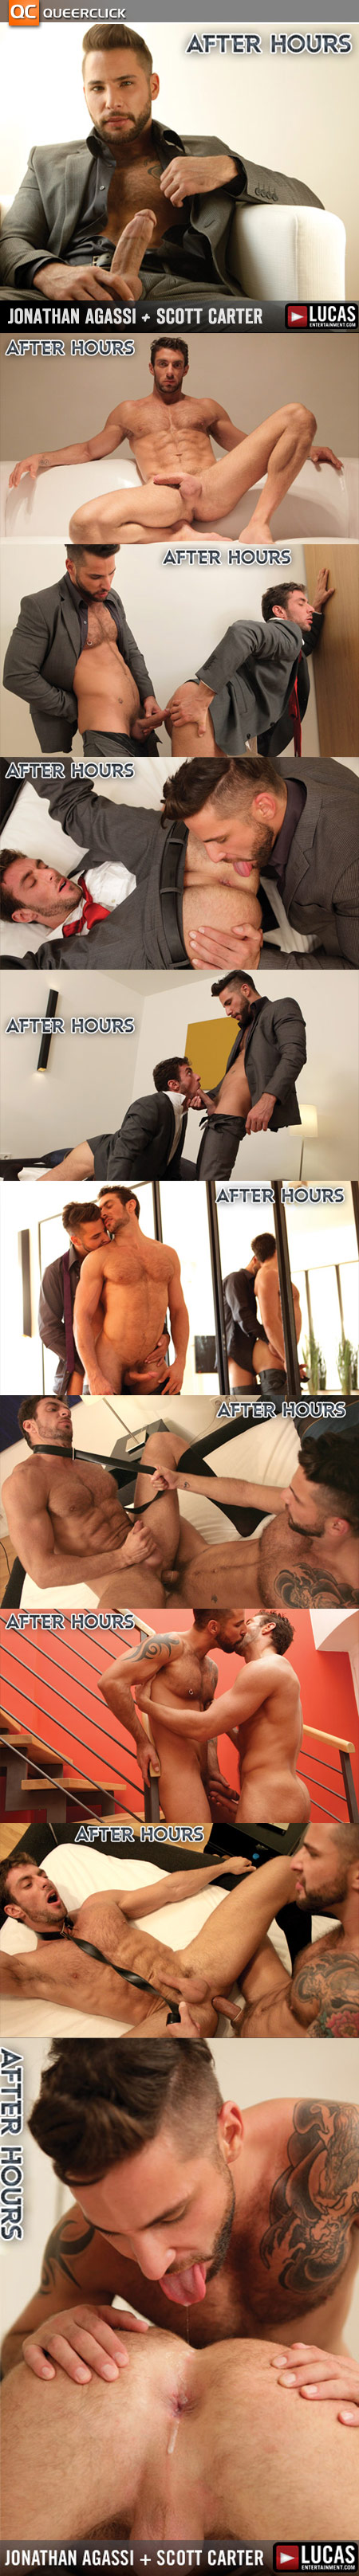 Jonathan Agassi and Scott Carter in After Hours at Lucas Entertainment